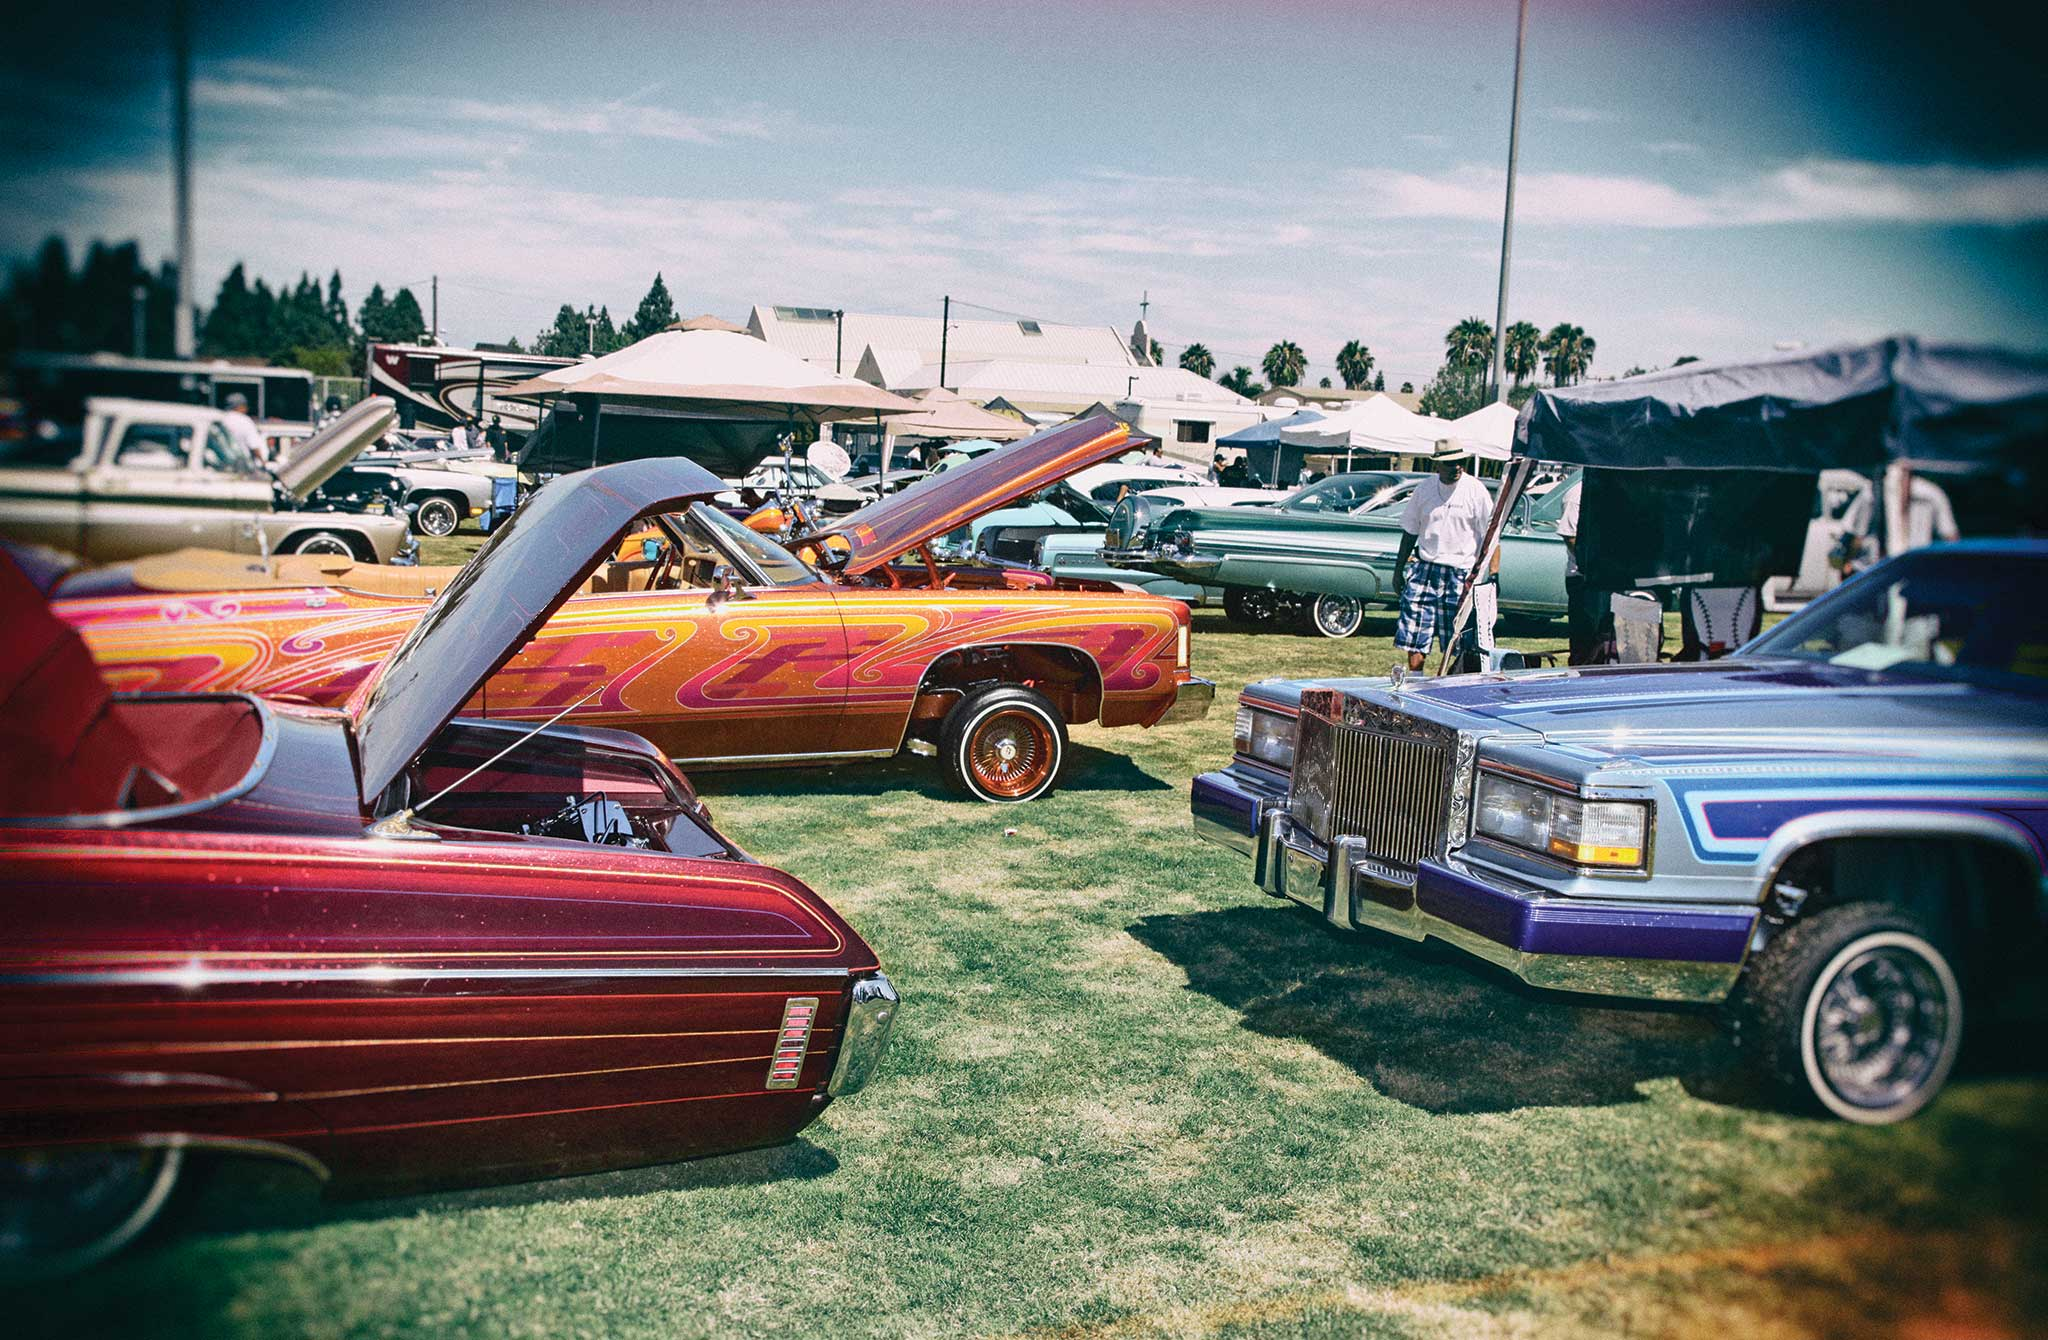 011 13th annual imperials car show and concert cadillac chevys